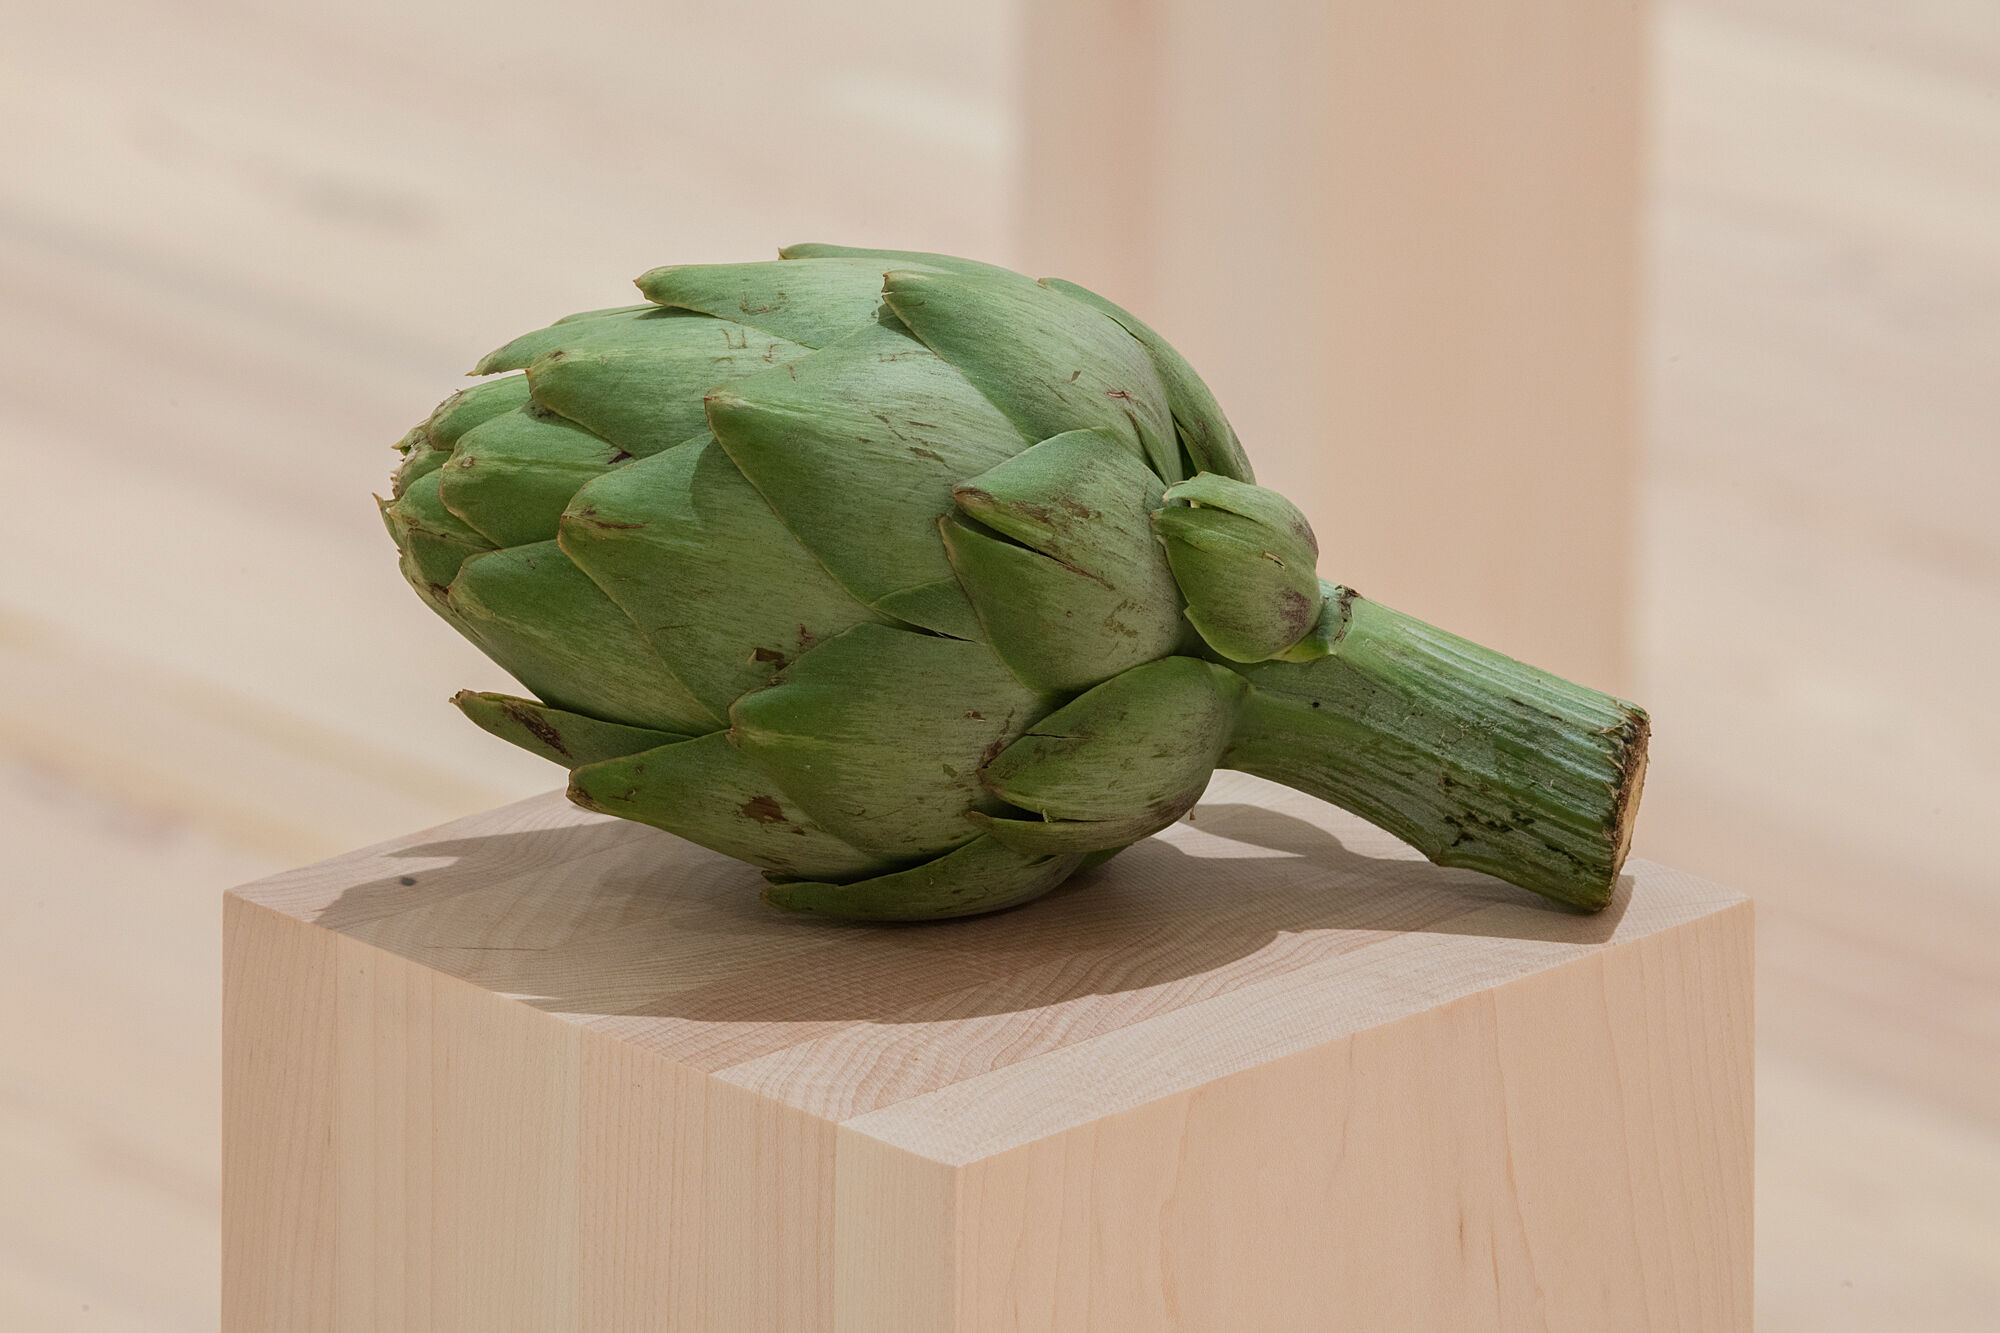 A photo of an artichoke on a plinth.